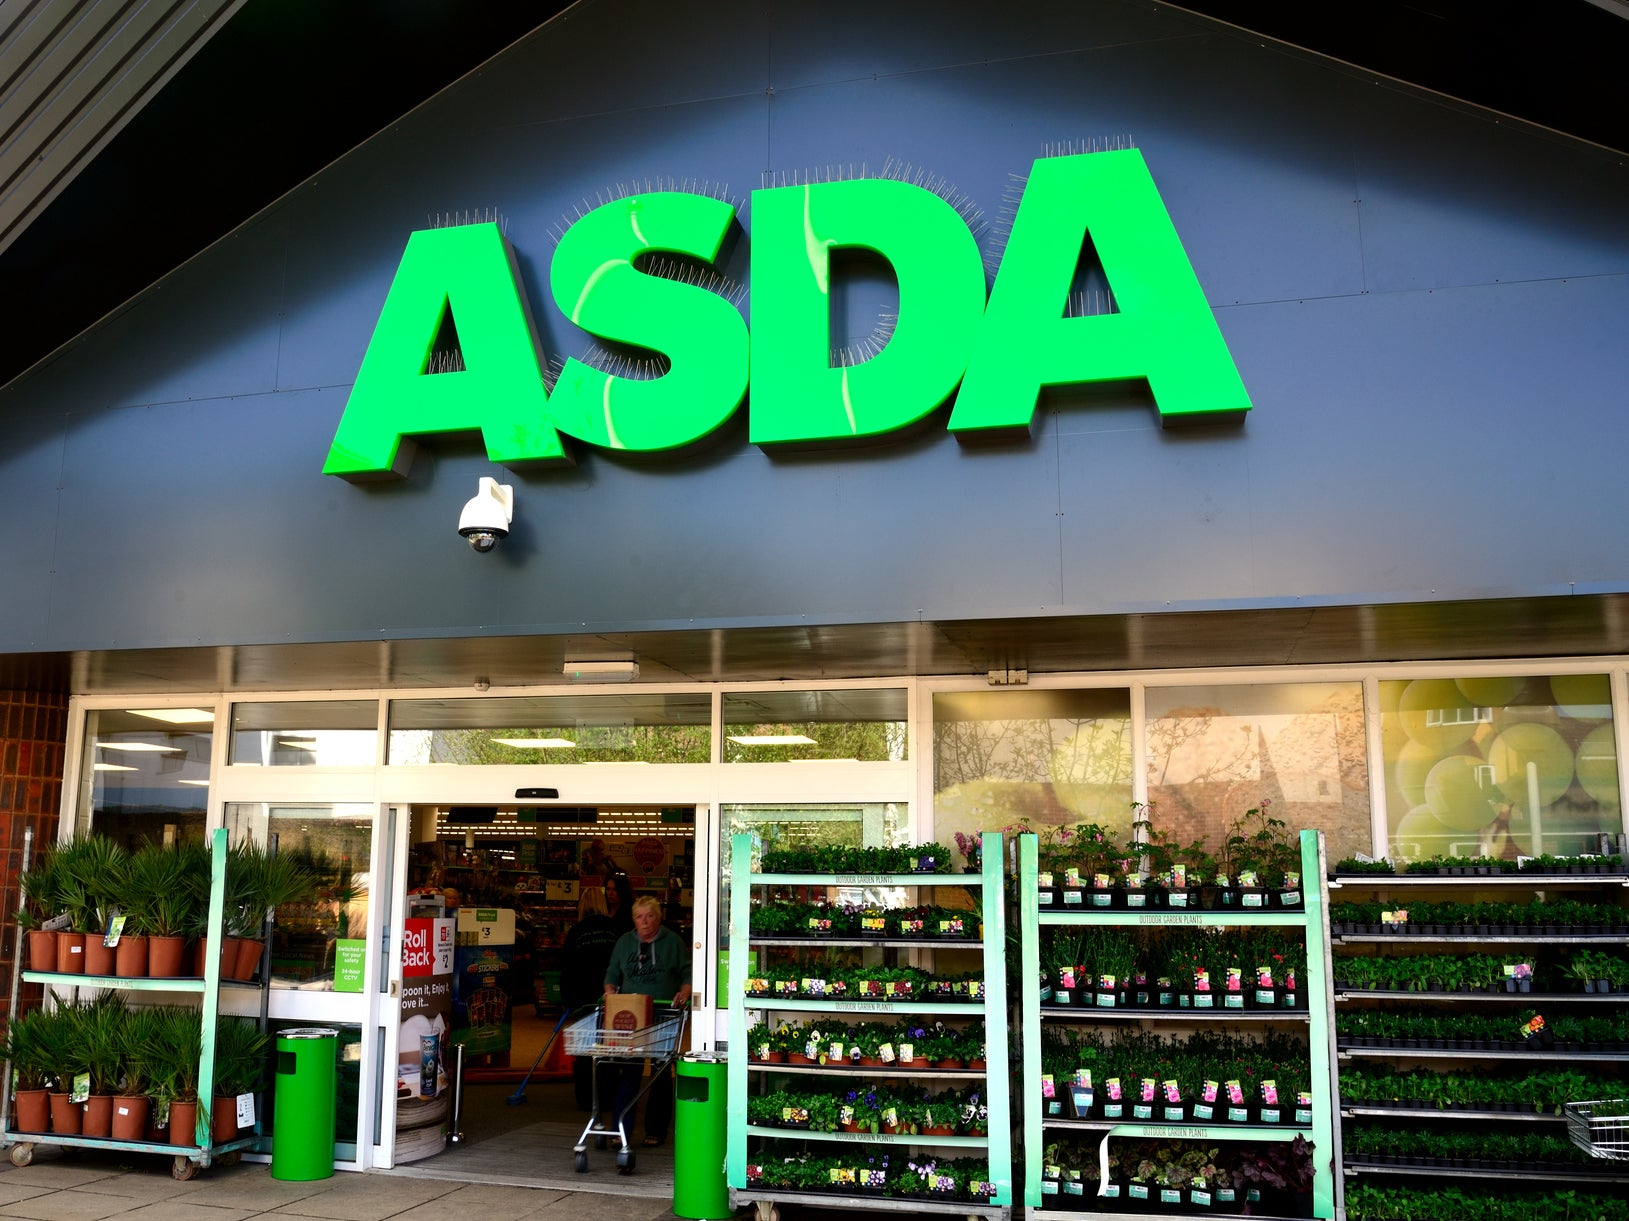 Thousands of ASDA employees could lose jobs in contract switch, unio…